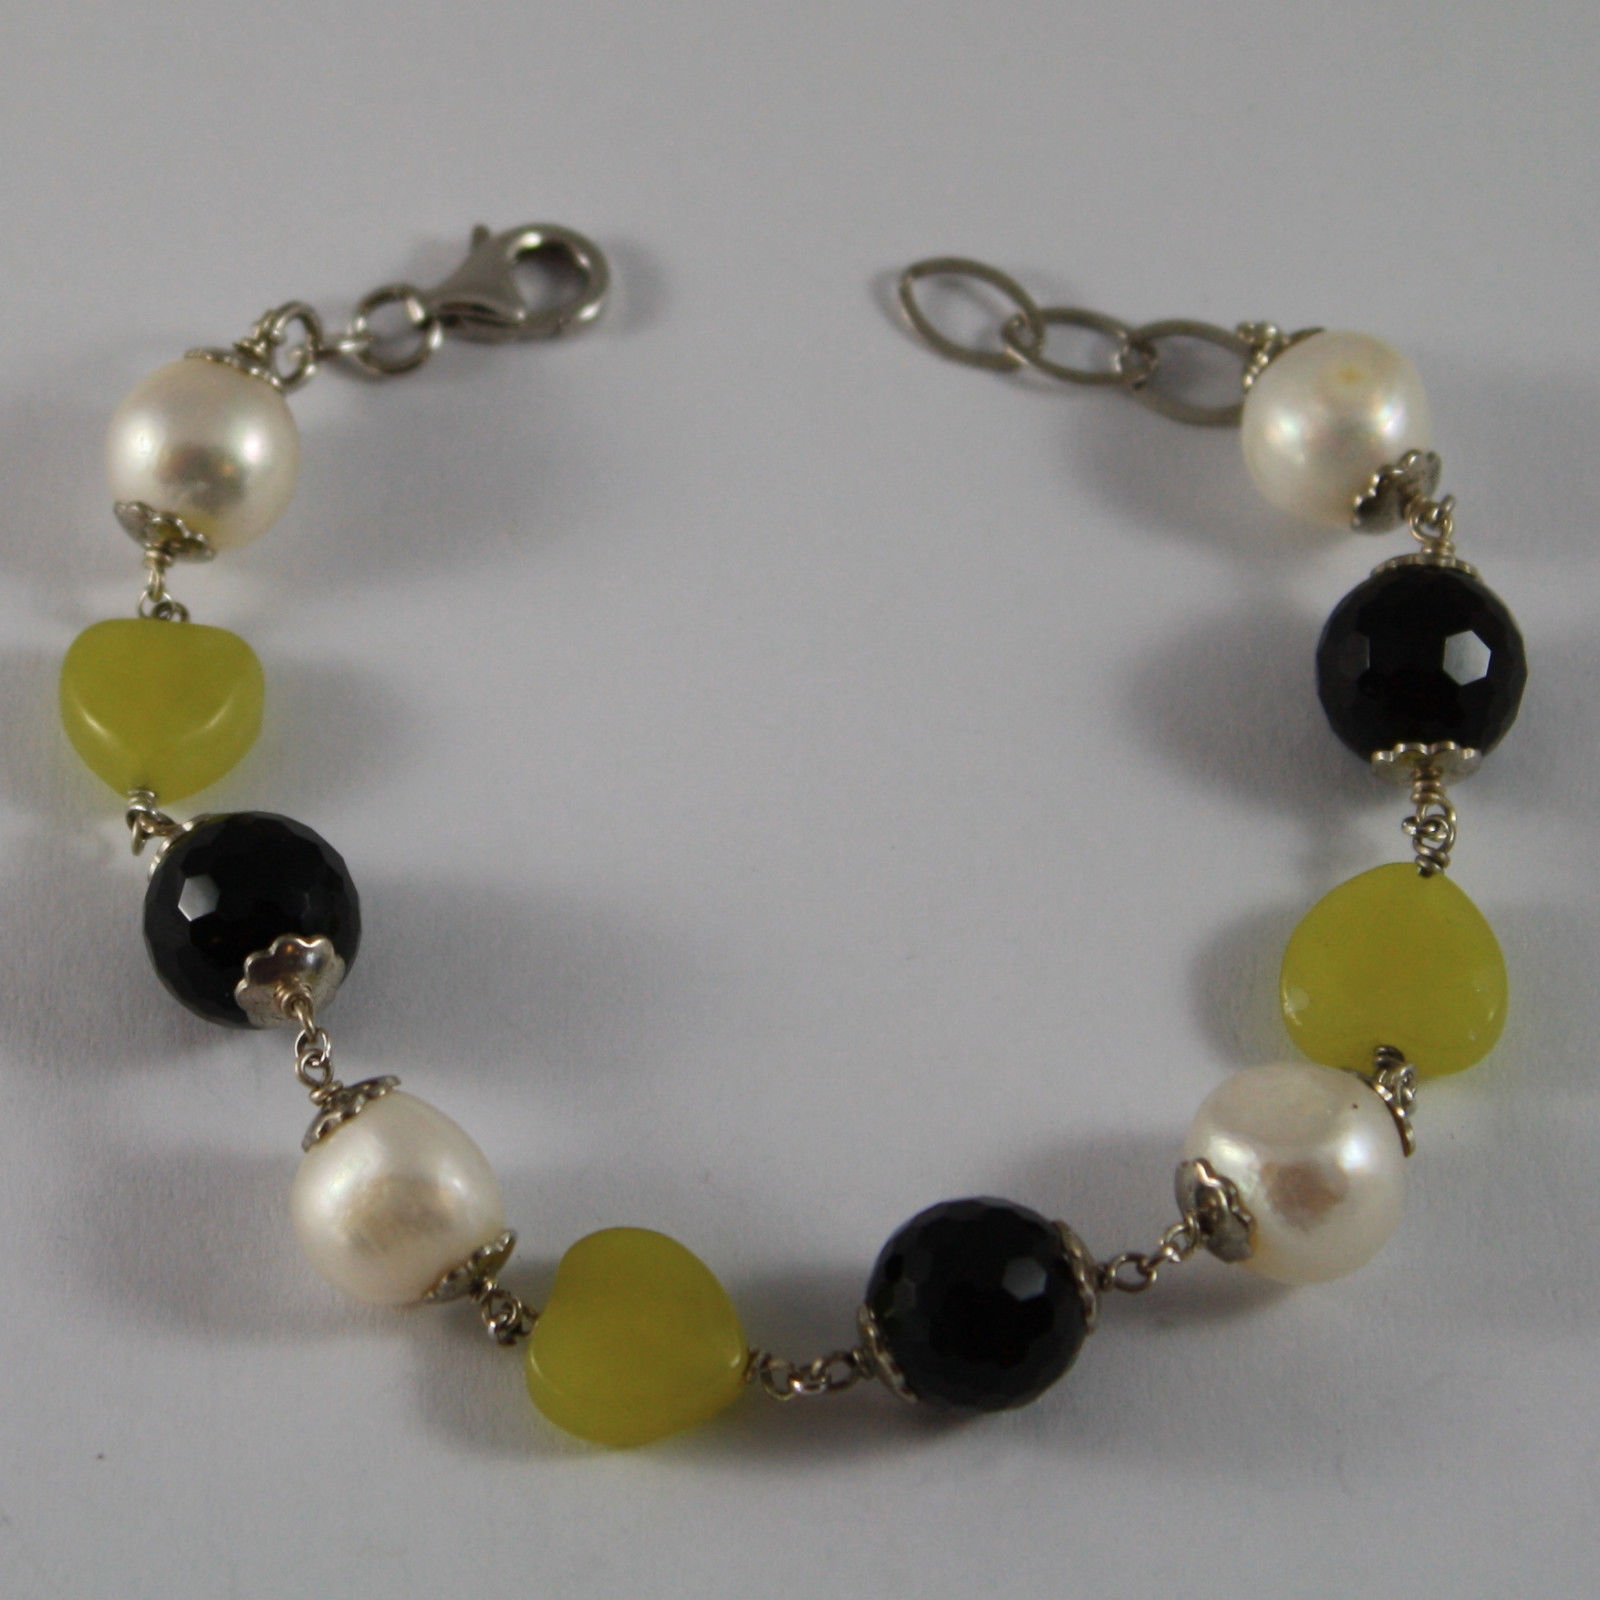 .925 RHODIUM SILVER BRACELET WITH BLACK ONYX, WHITE PEARLS AND GREEN JASPER